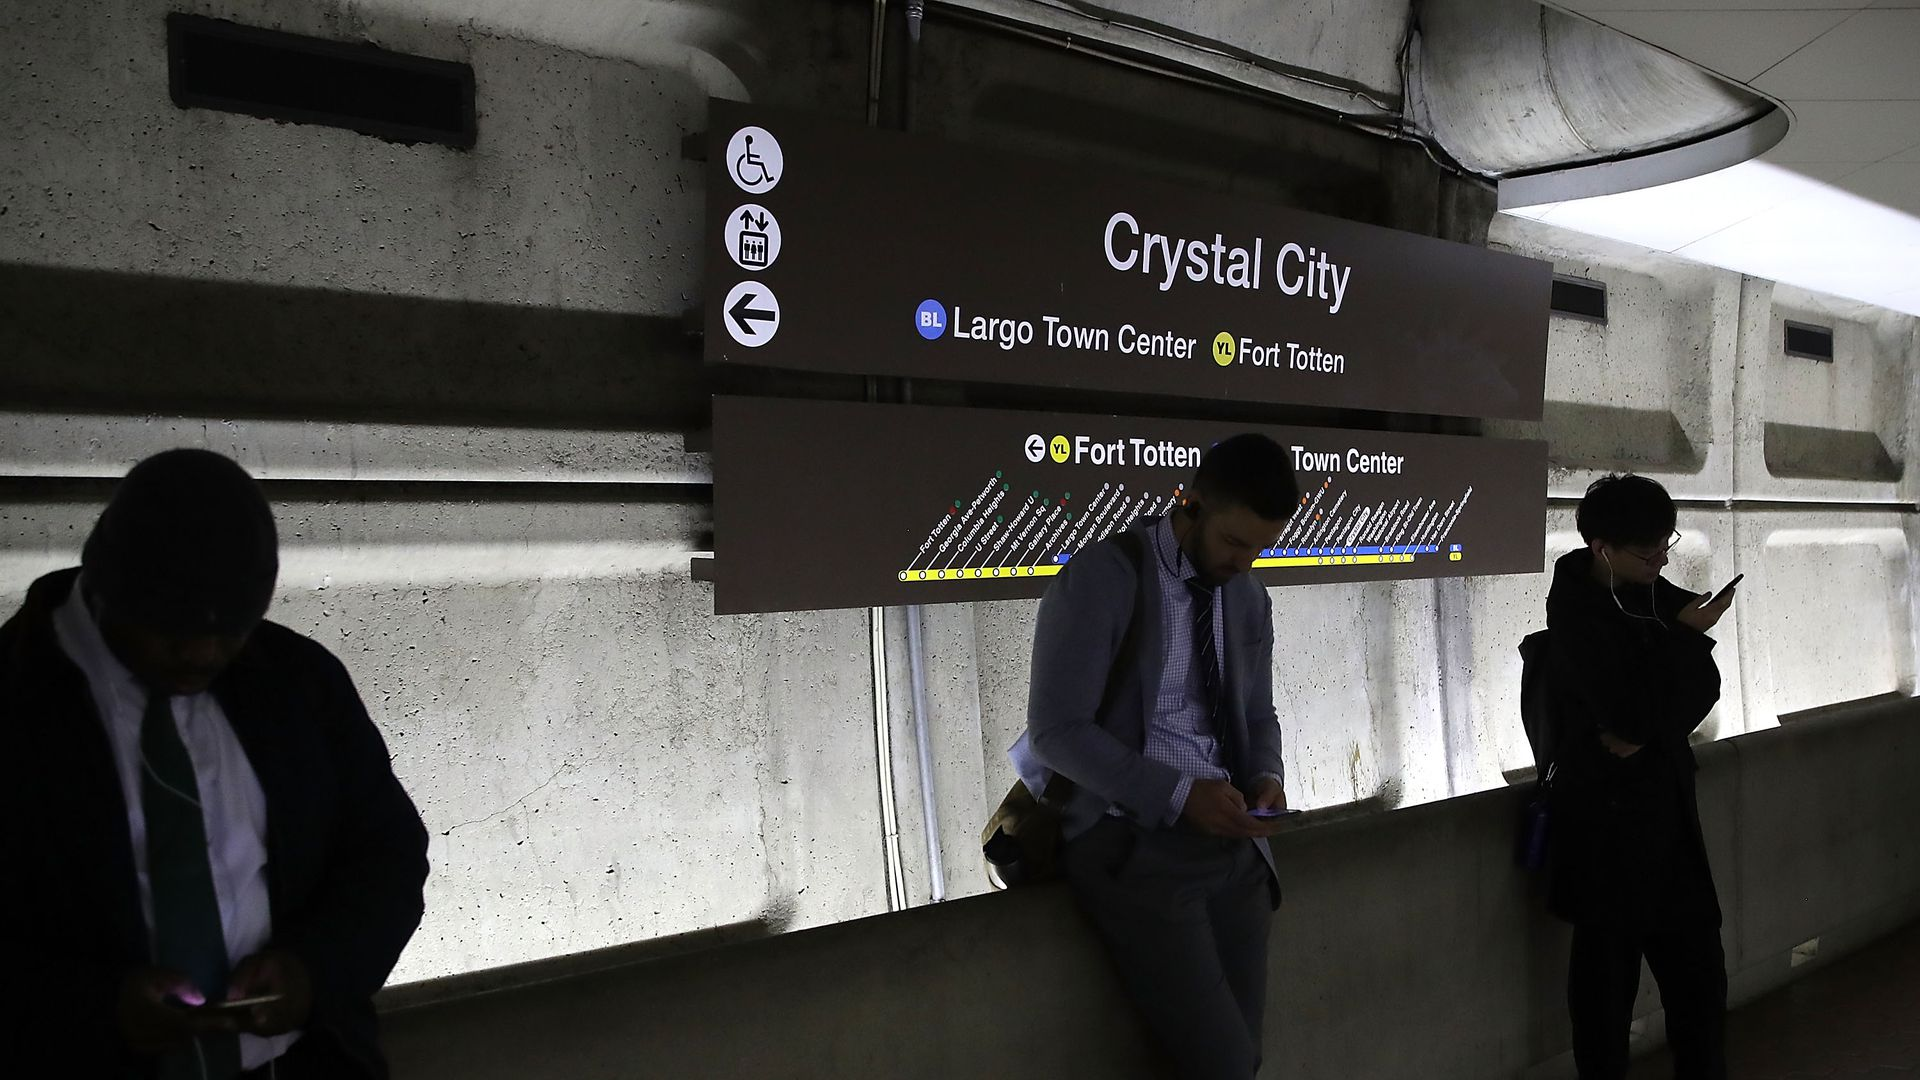 """People wait on a subway platform underneath a sign that says """"Crystal City"""""""